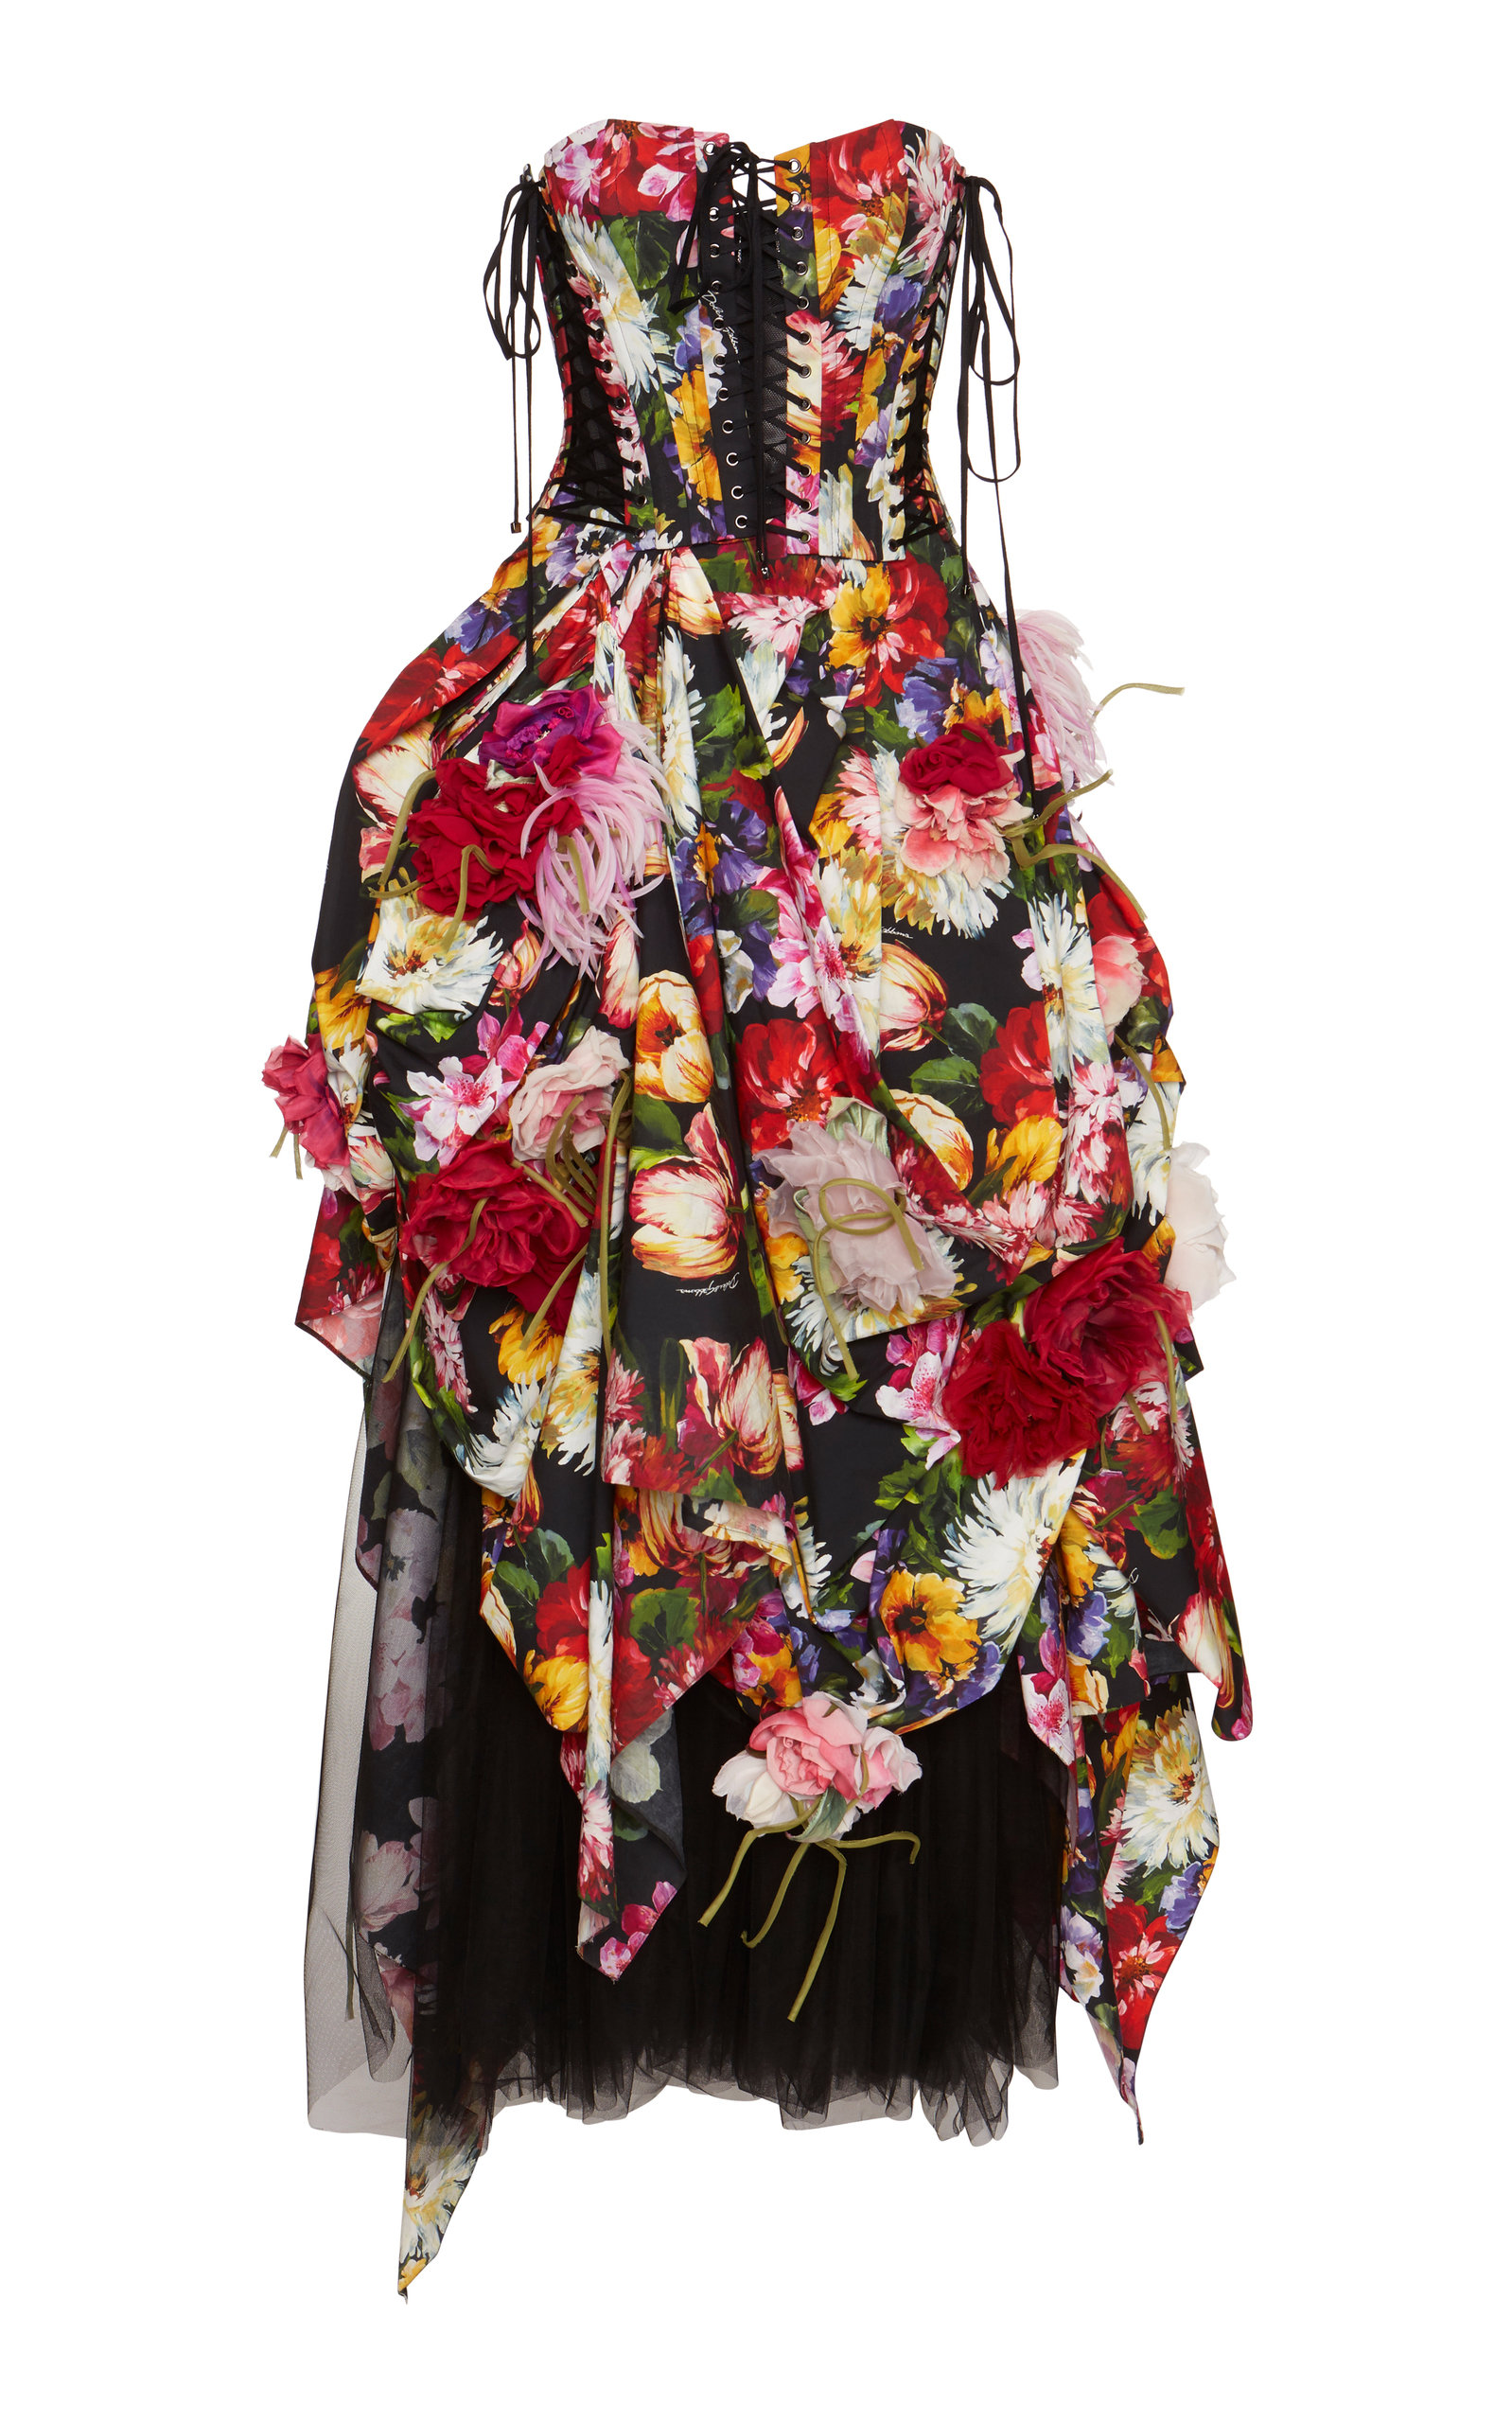 d0355a5541 Dolce   GabbanaFloral Poplin Tiered Gown. CLOSE. Loading